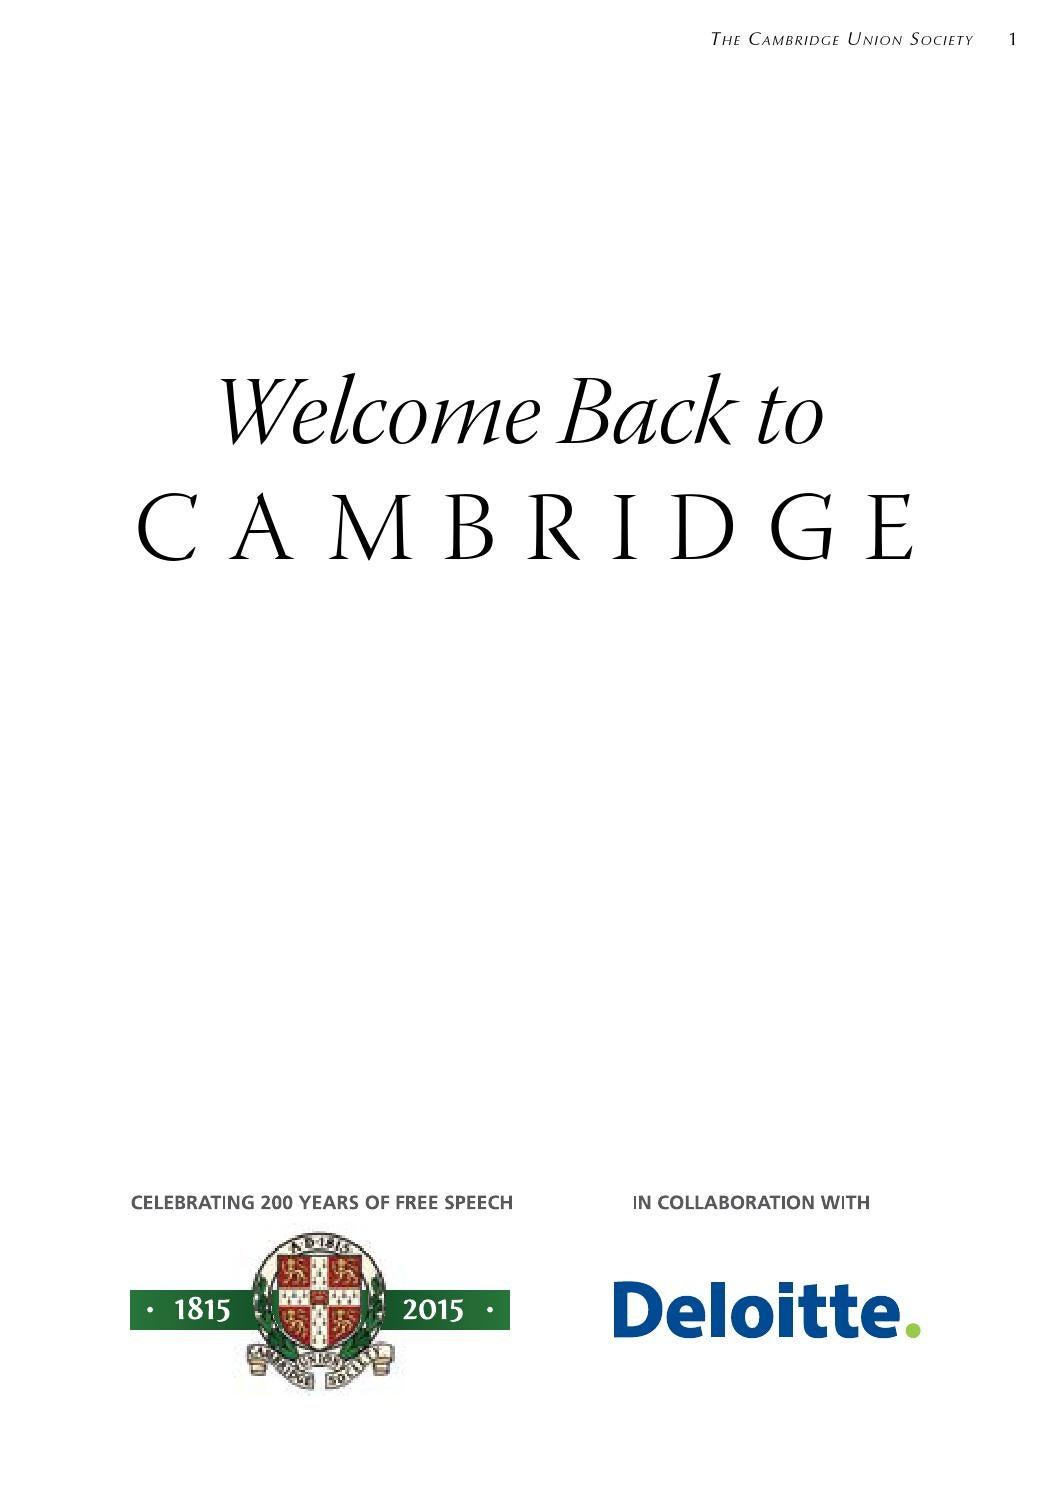 The Bicentenary Booklet  Cambridge Union by The Cambridge